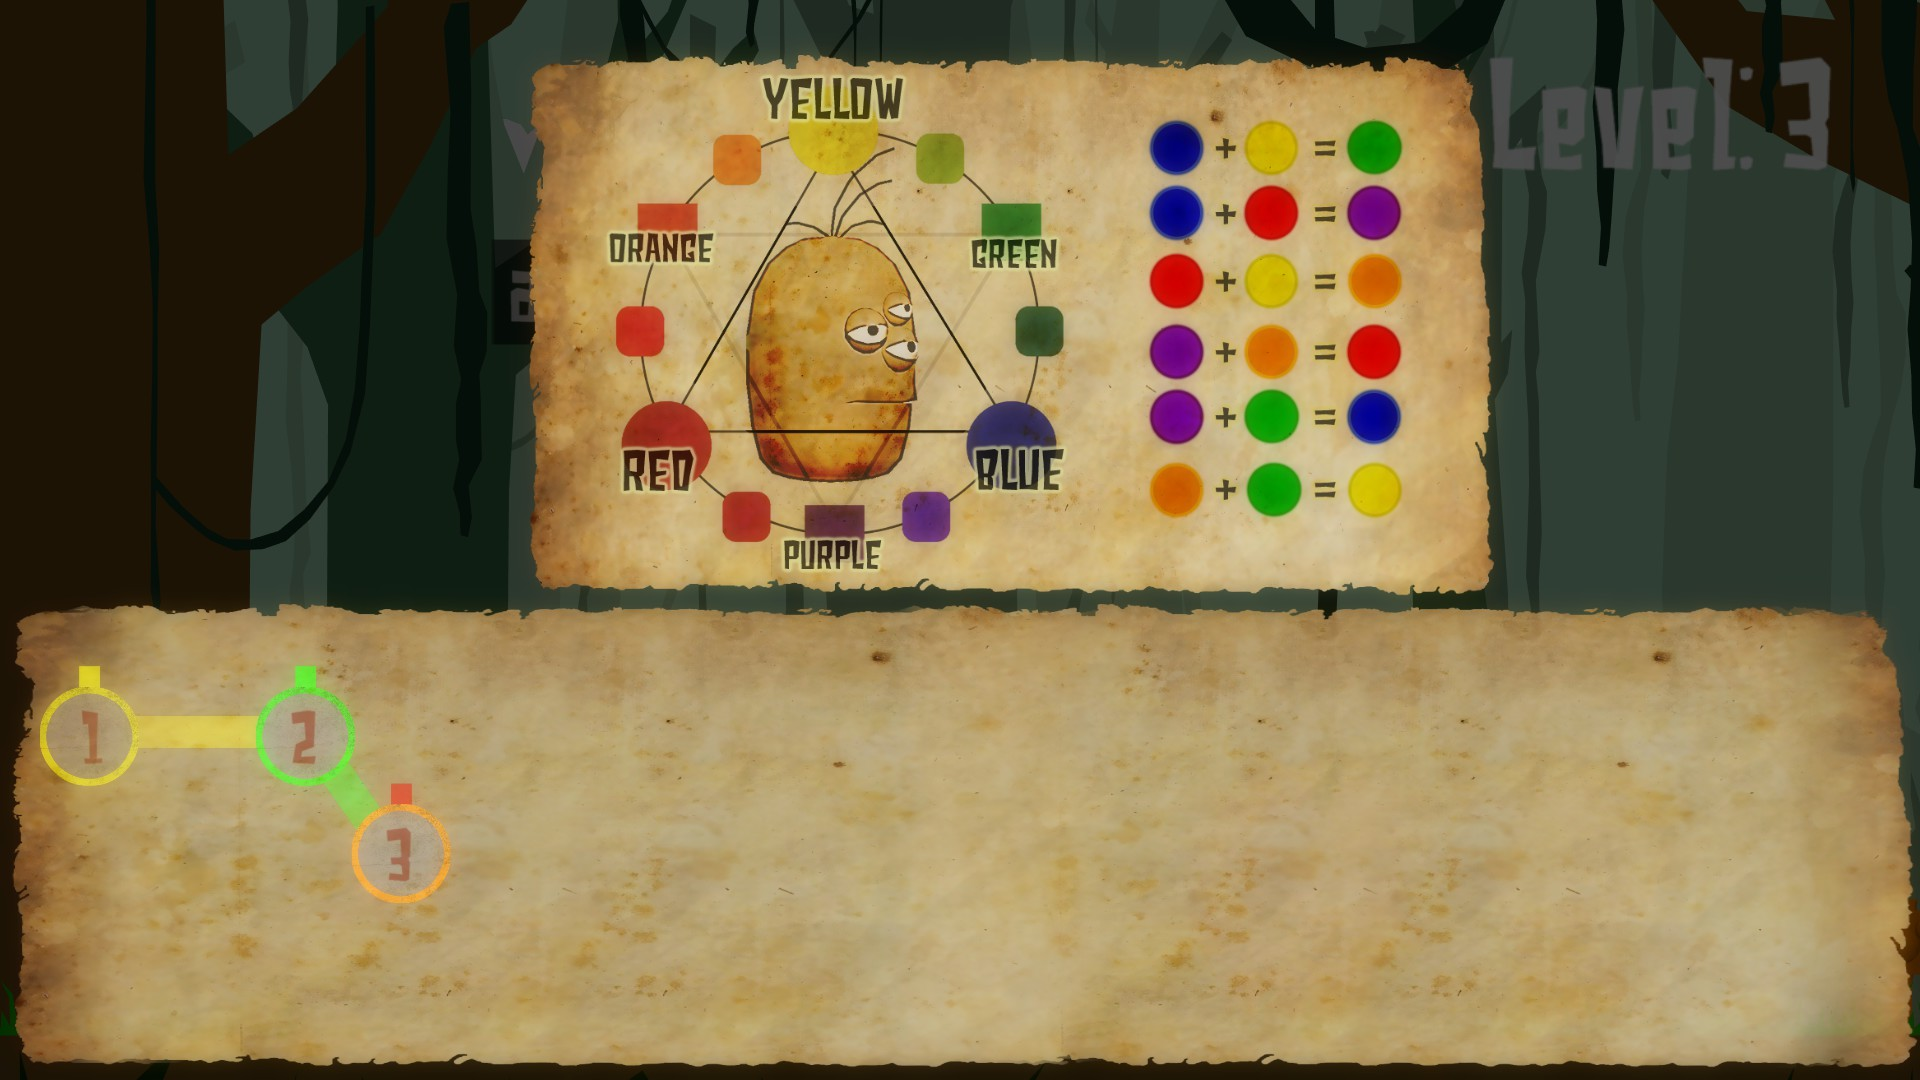 Map of Coated's levels, currently levels 1 through 3 are revealed. A diagram of the color wheel is also present with lines to show traditional color mixing rules.